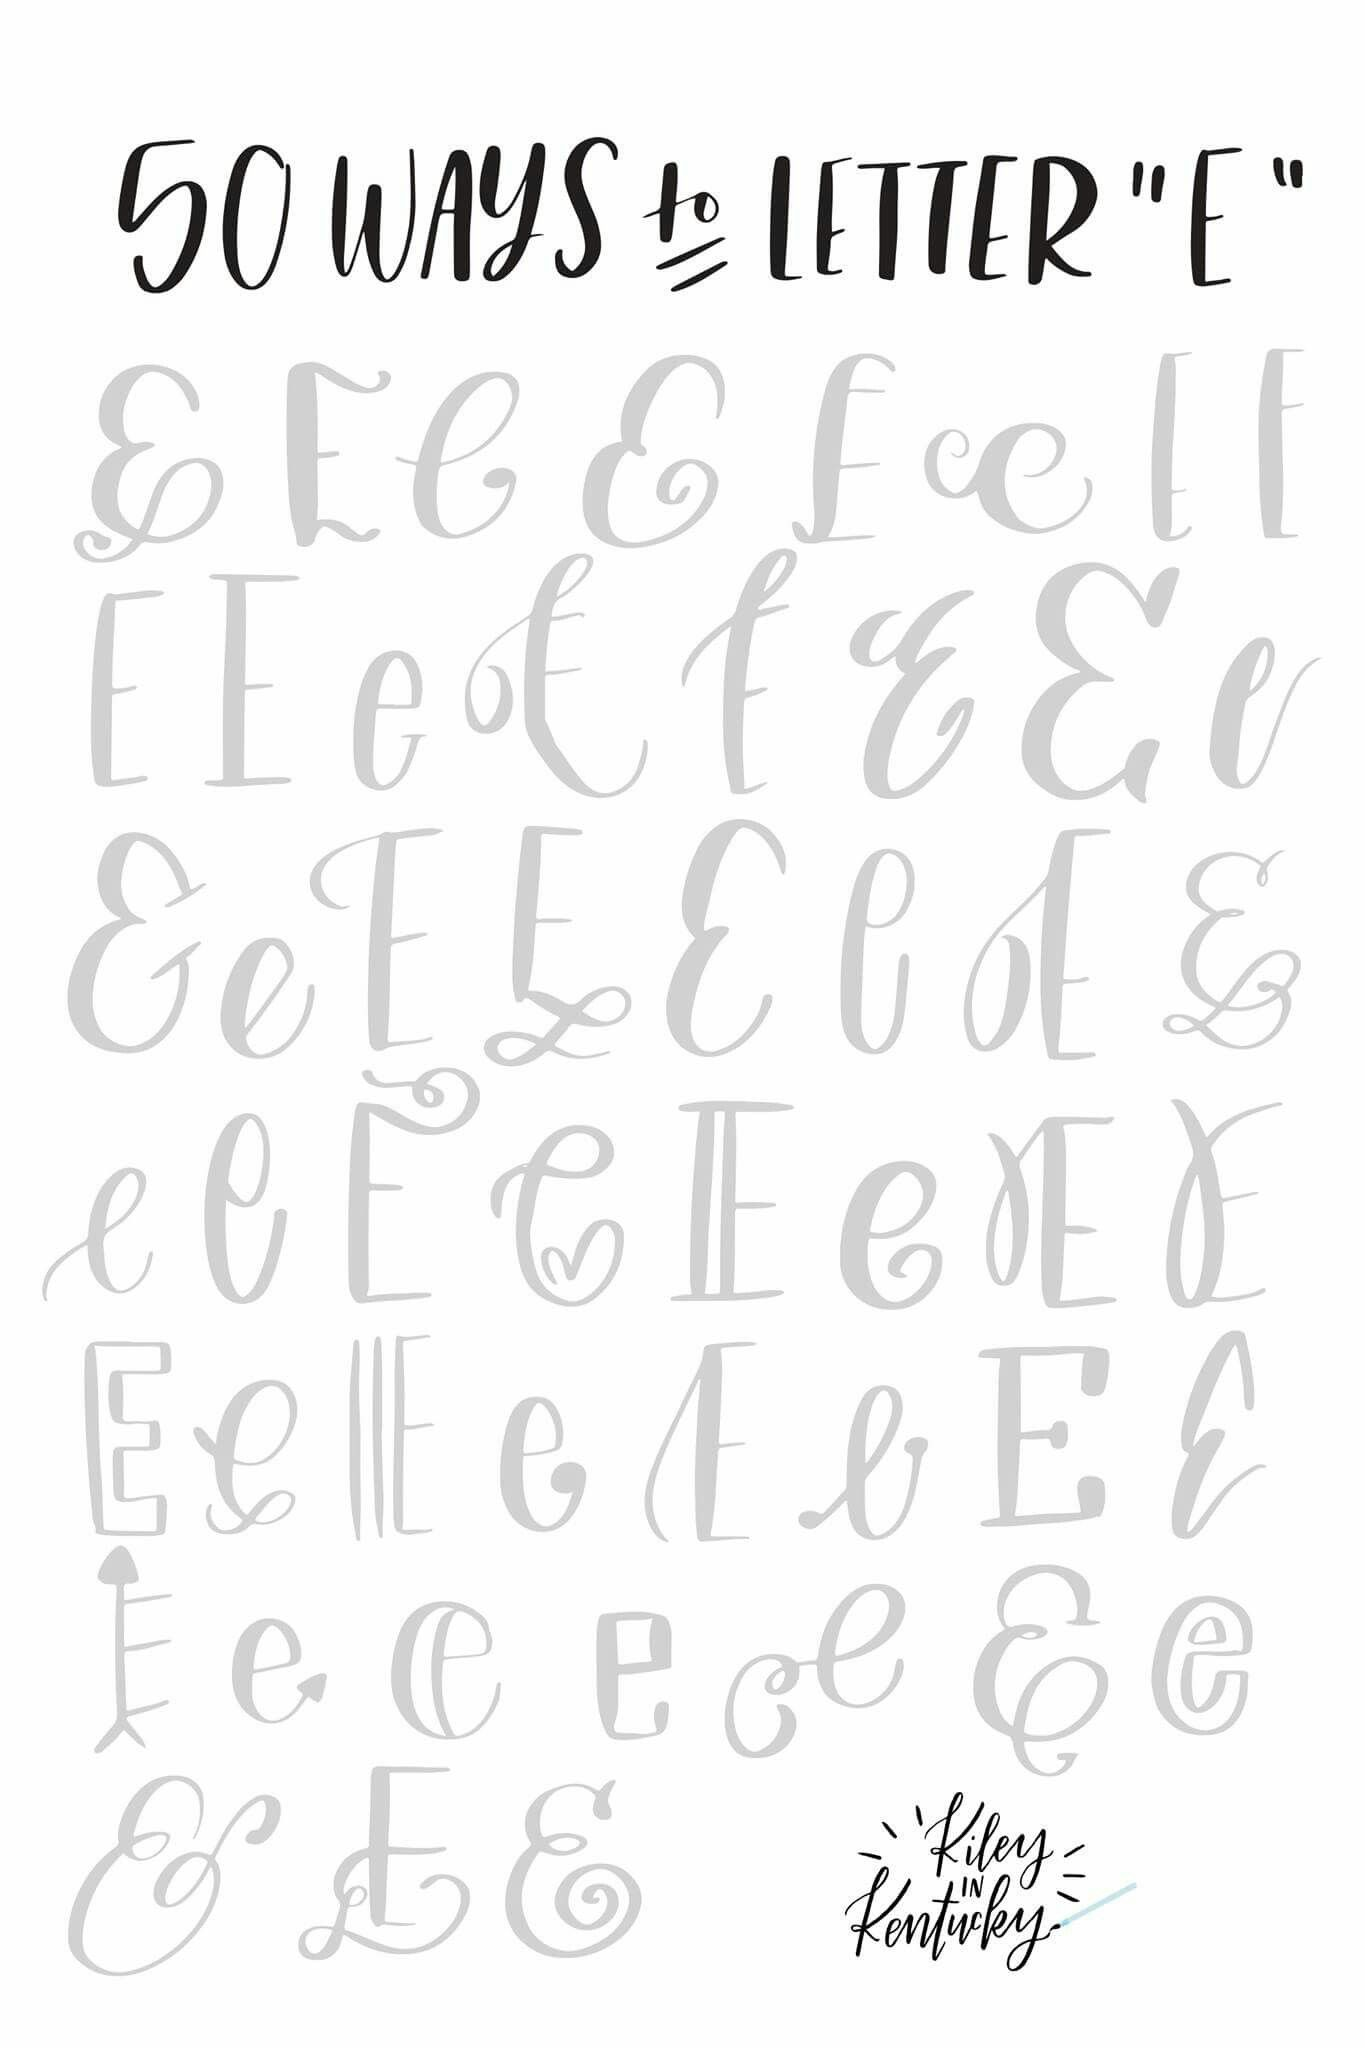 50 Ways To Letter E